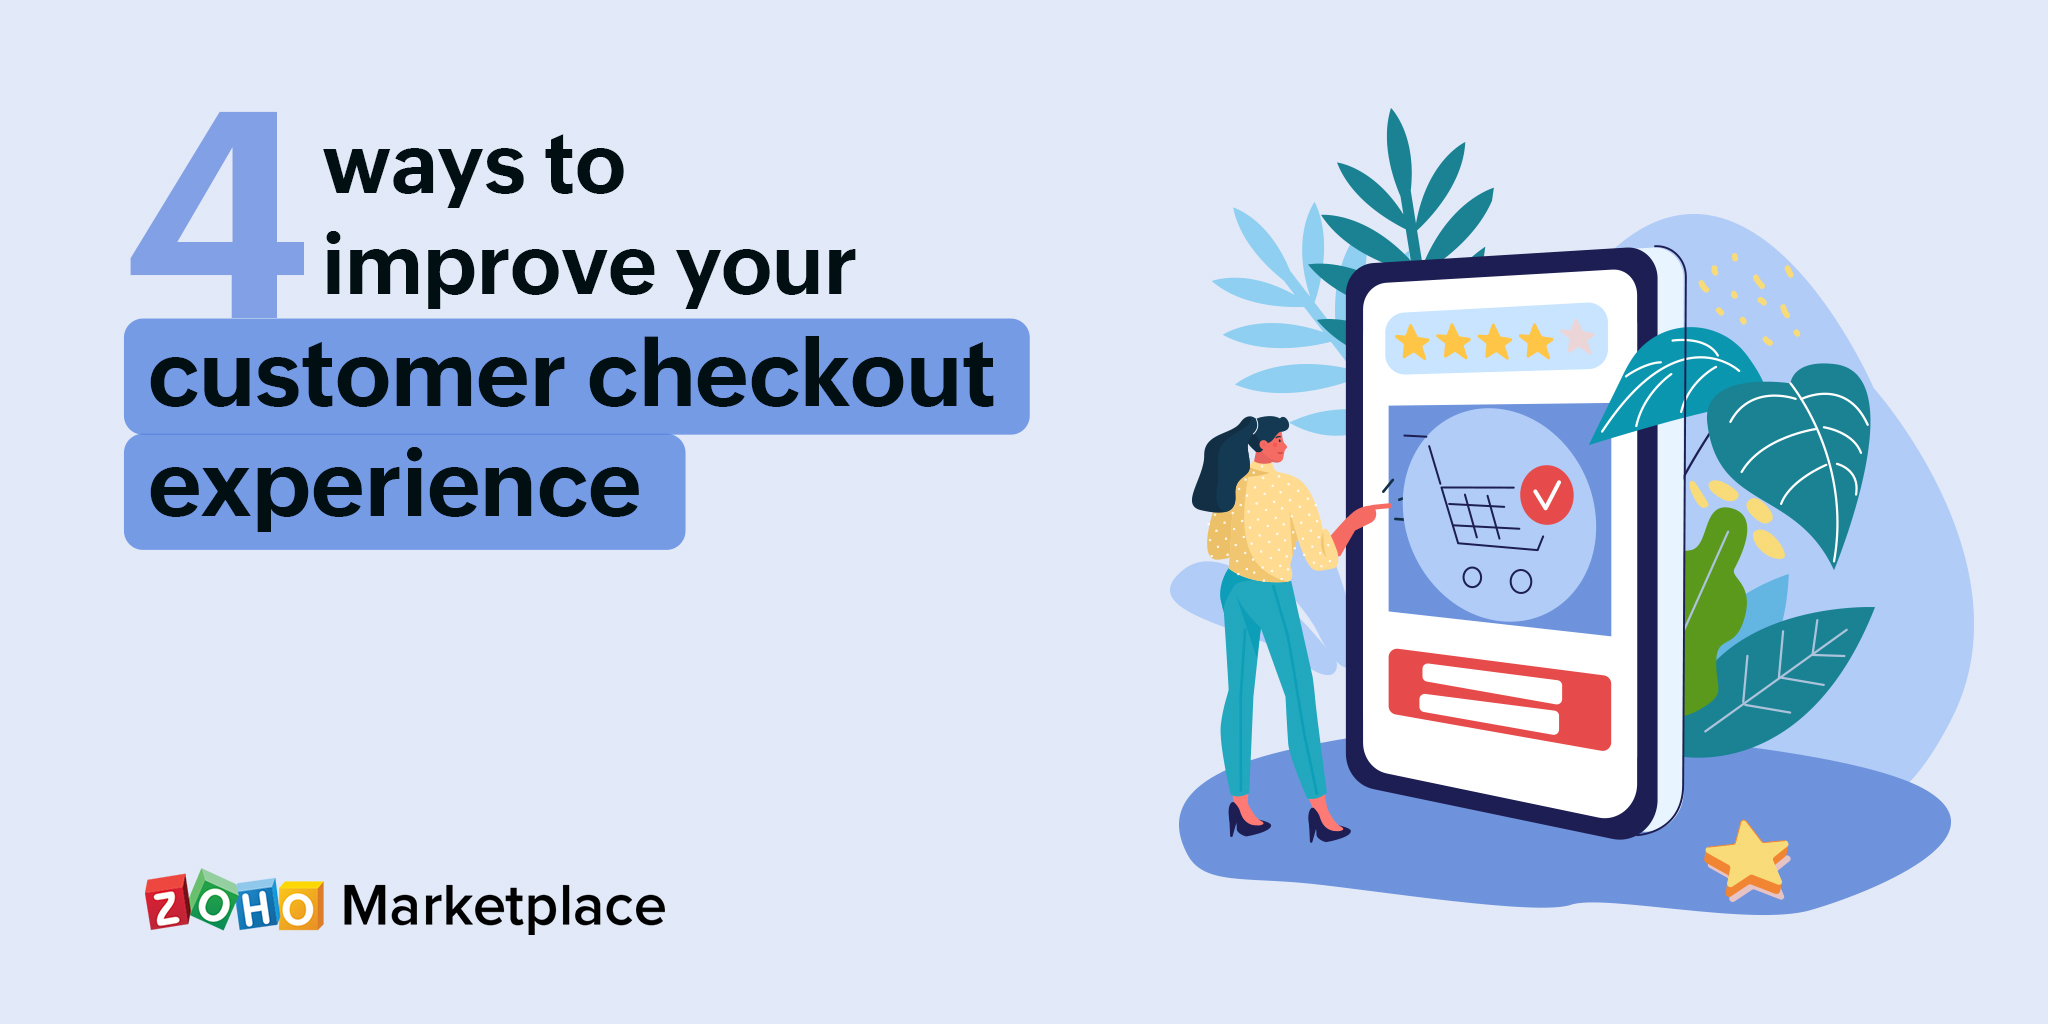 ProTips: 4 ways to improve your customer checkout experience